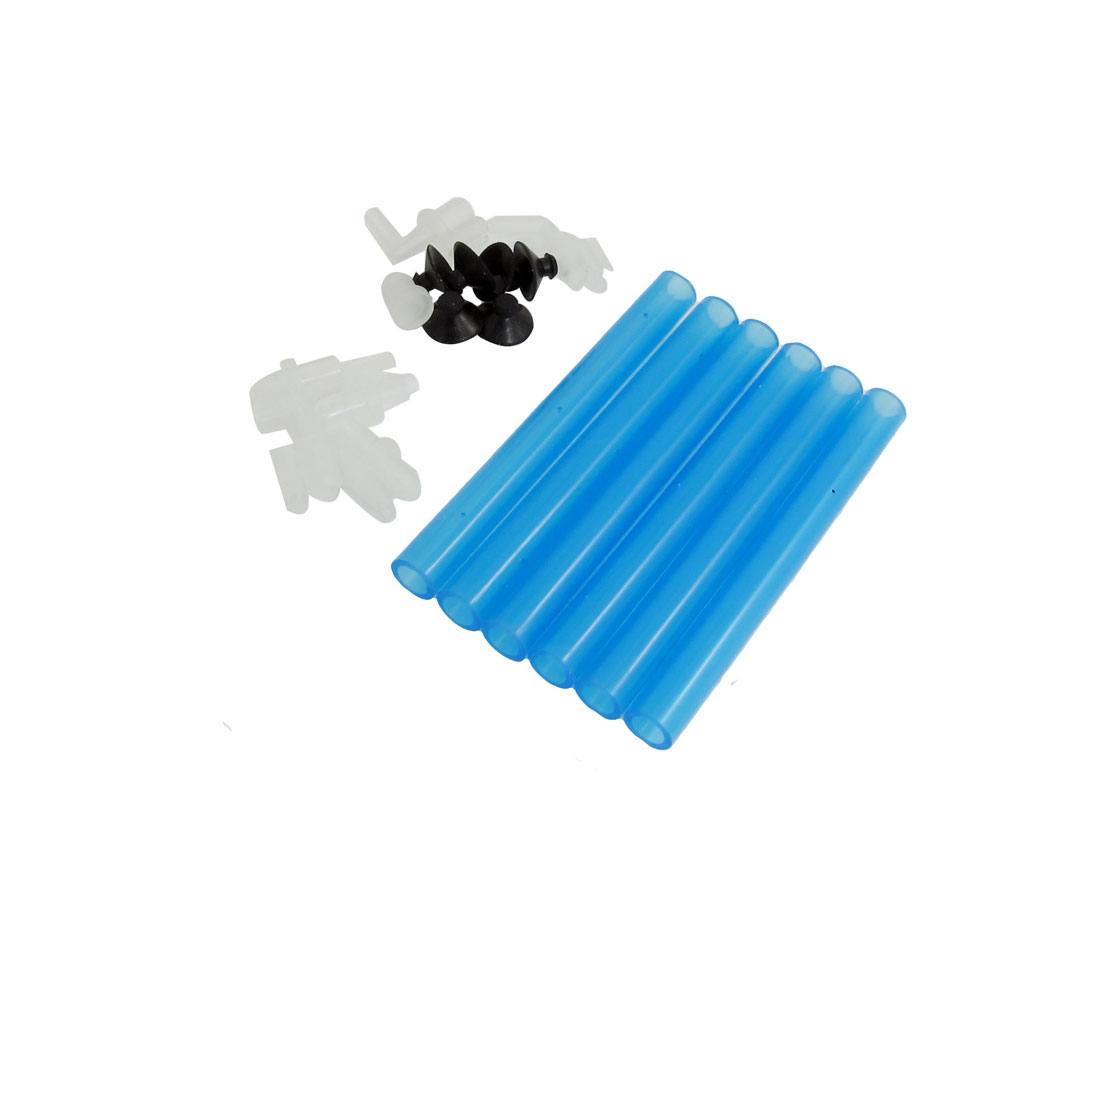 Aquarium Air Curtain Bubble Release Bar Diffuser Set Black Blue White